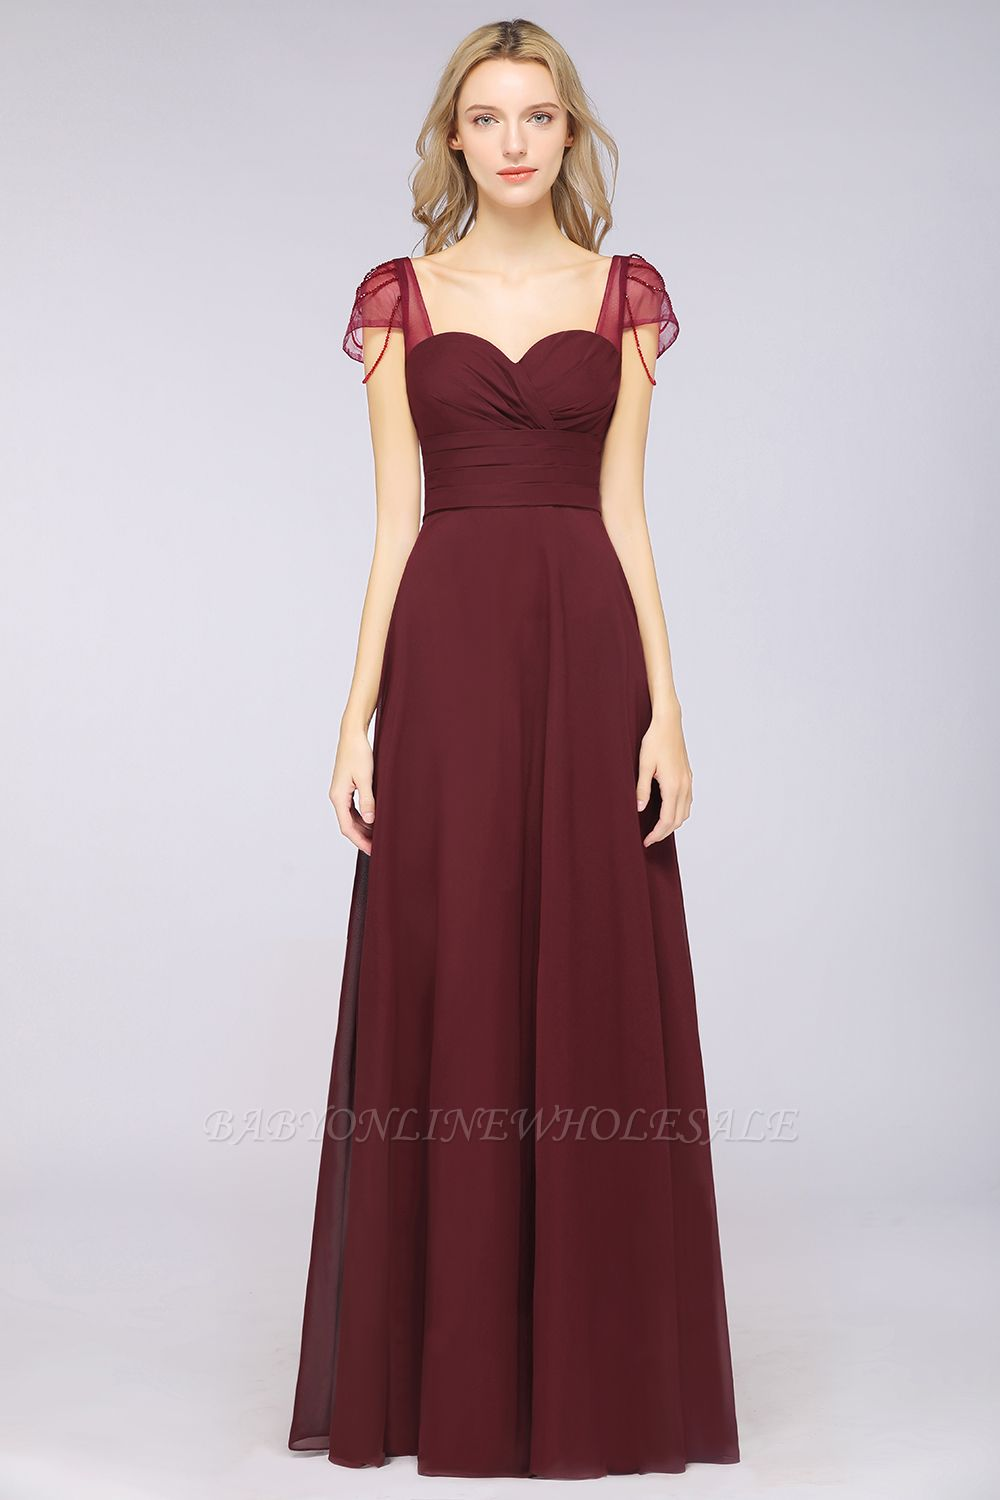 Chiffon A-Line Sweetheart Cap-Sleeves Ruffle Long Bridesmaid Dress with Beadings